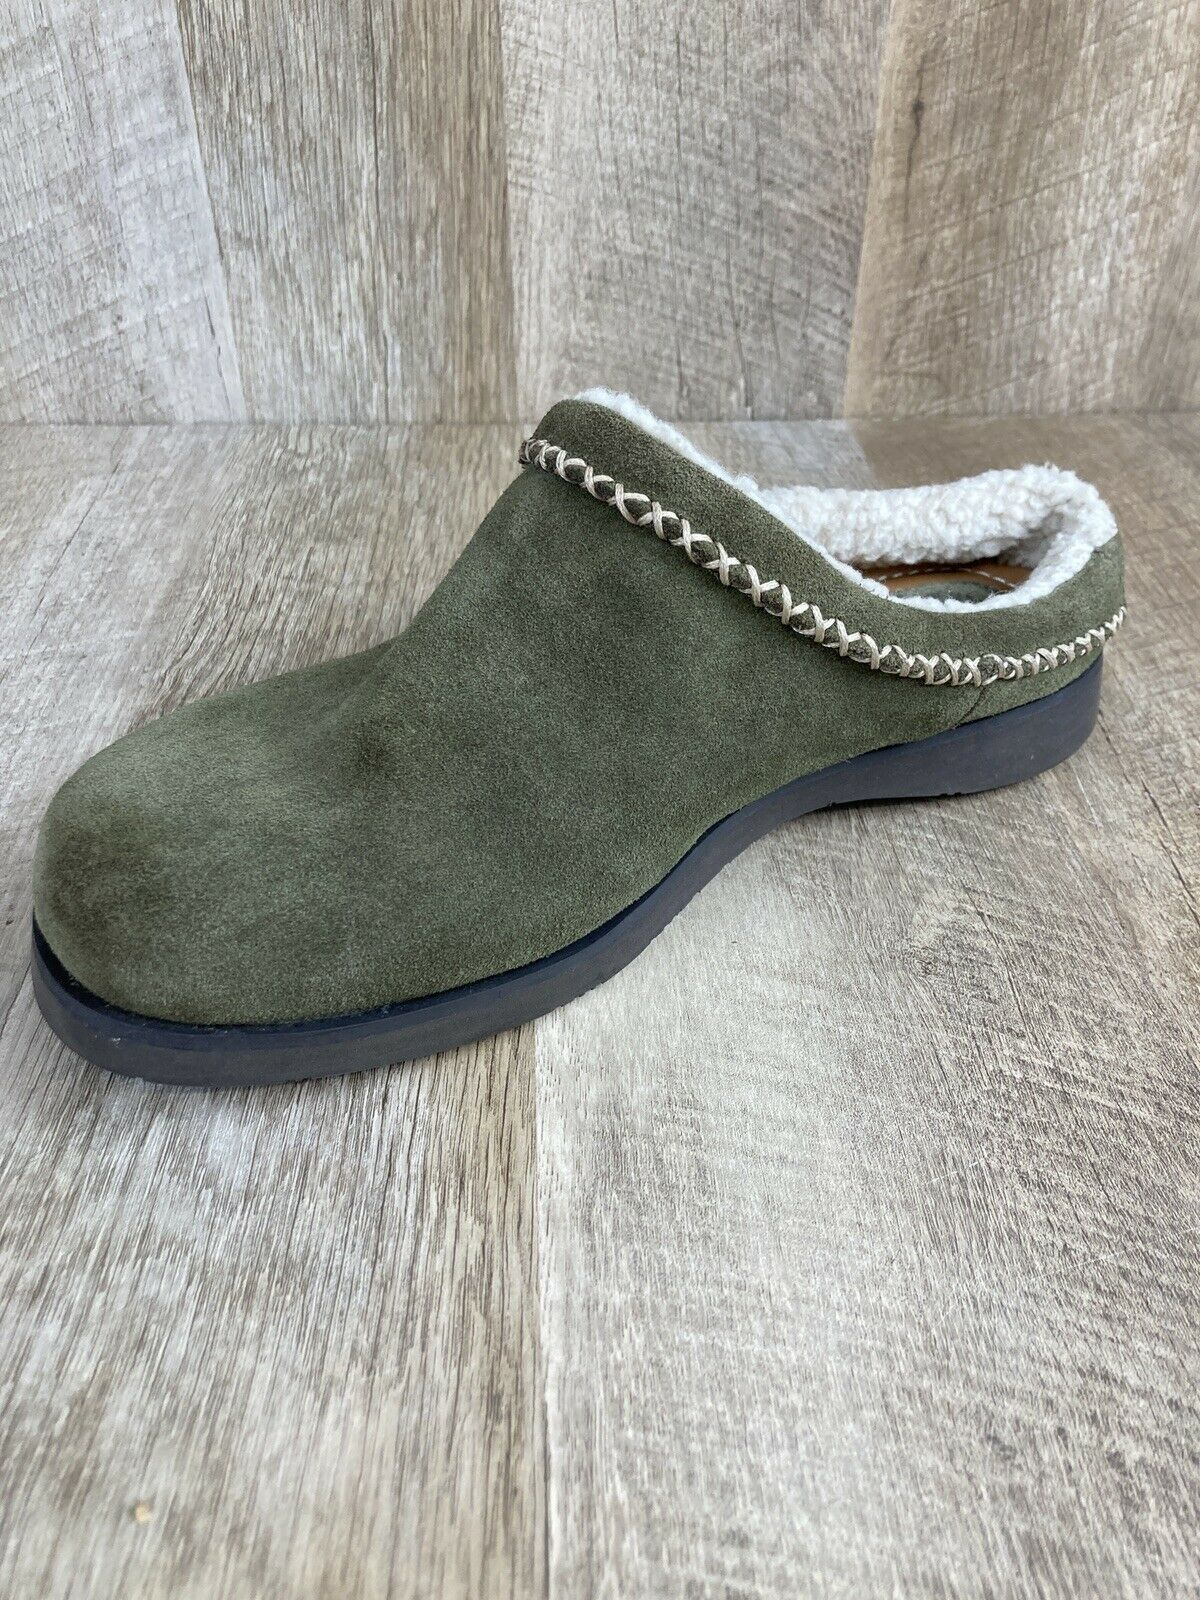 Fossil Slip On women's mule fur lined Green suede flat shoes US size 10